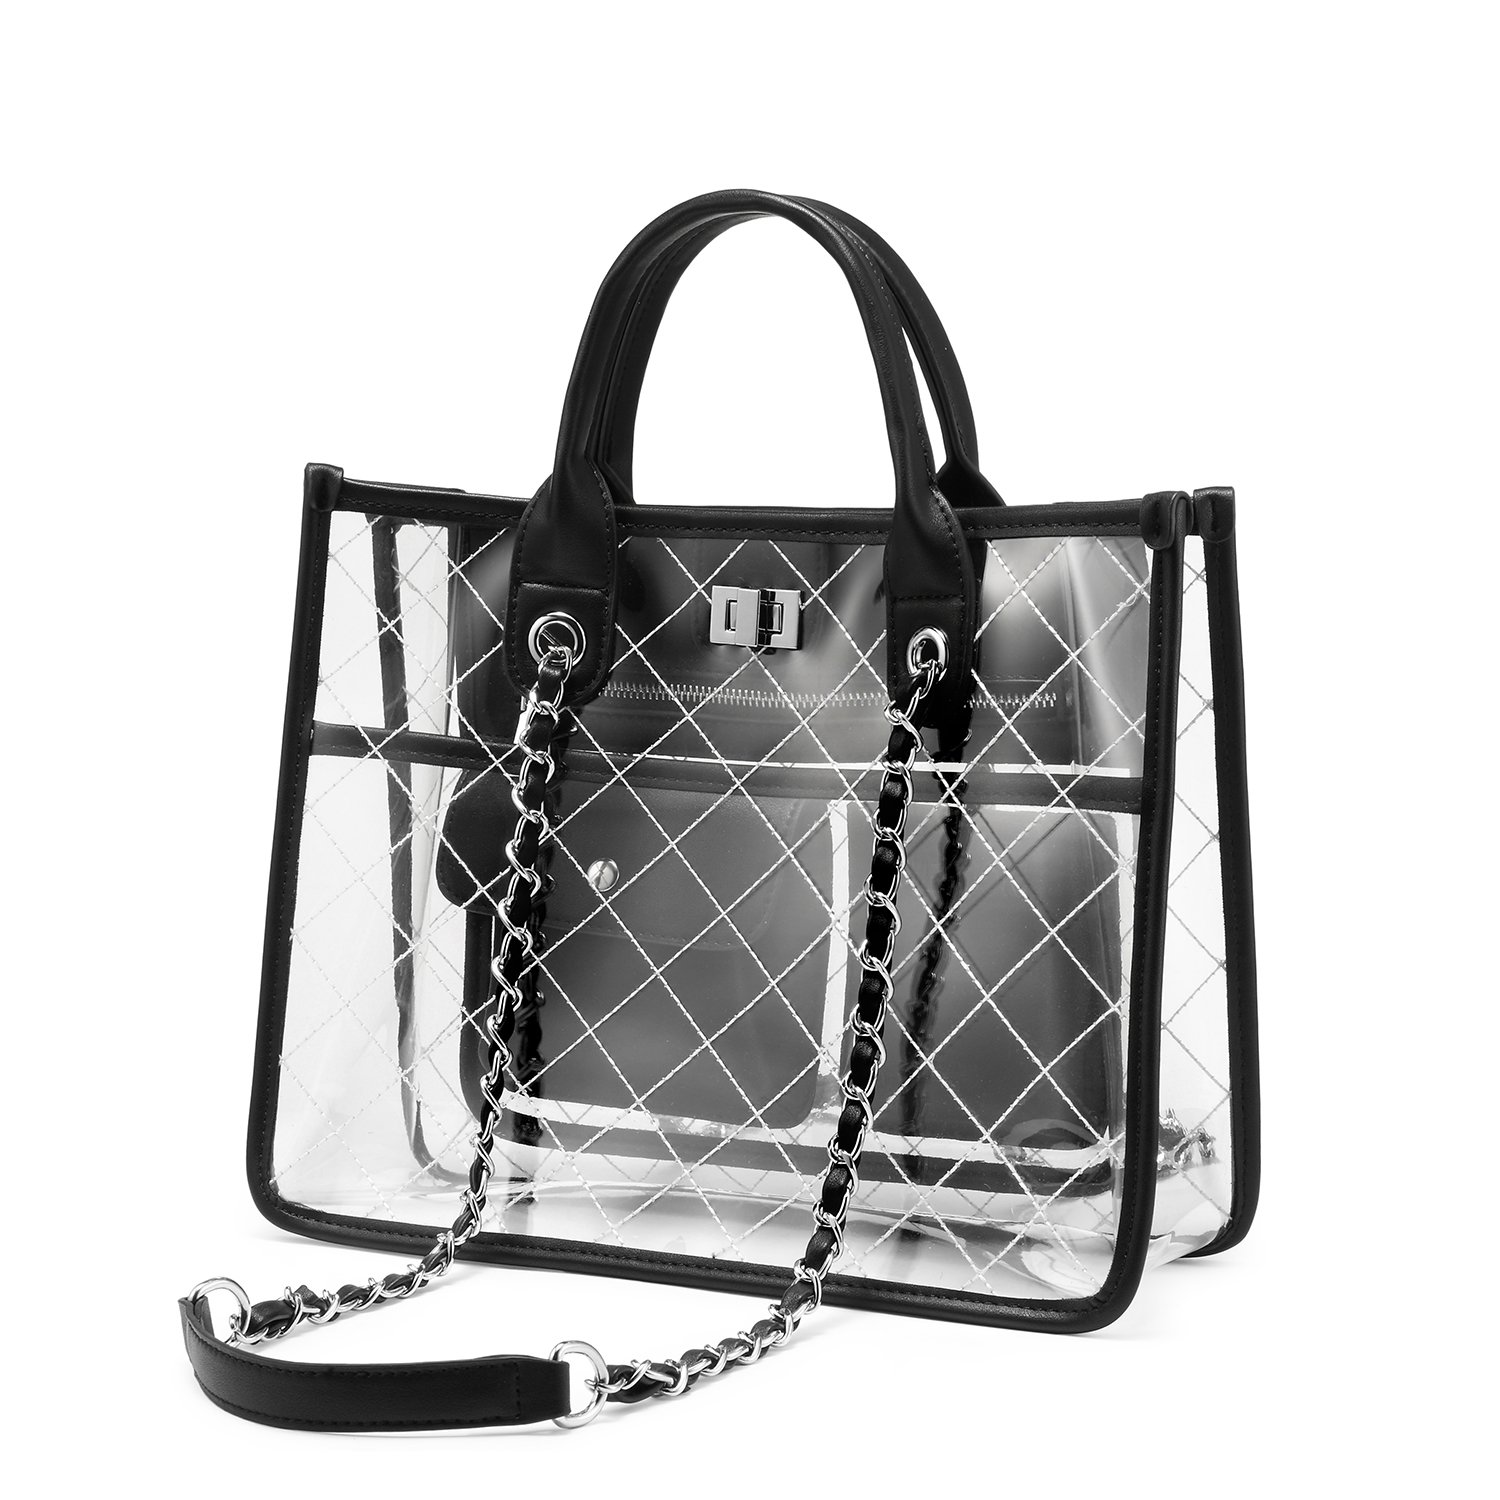 Amazon.com  LOVEVOOK Clear Tote Bag With Turn Lock Closure Girly PVC  Shoulder Bag Black  Shoes 8842f08aabc5a